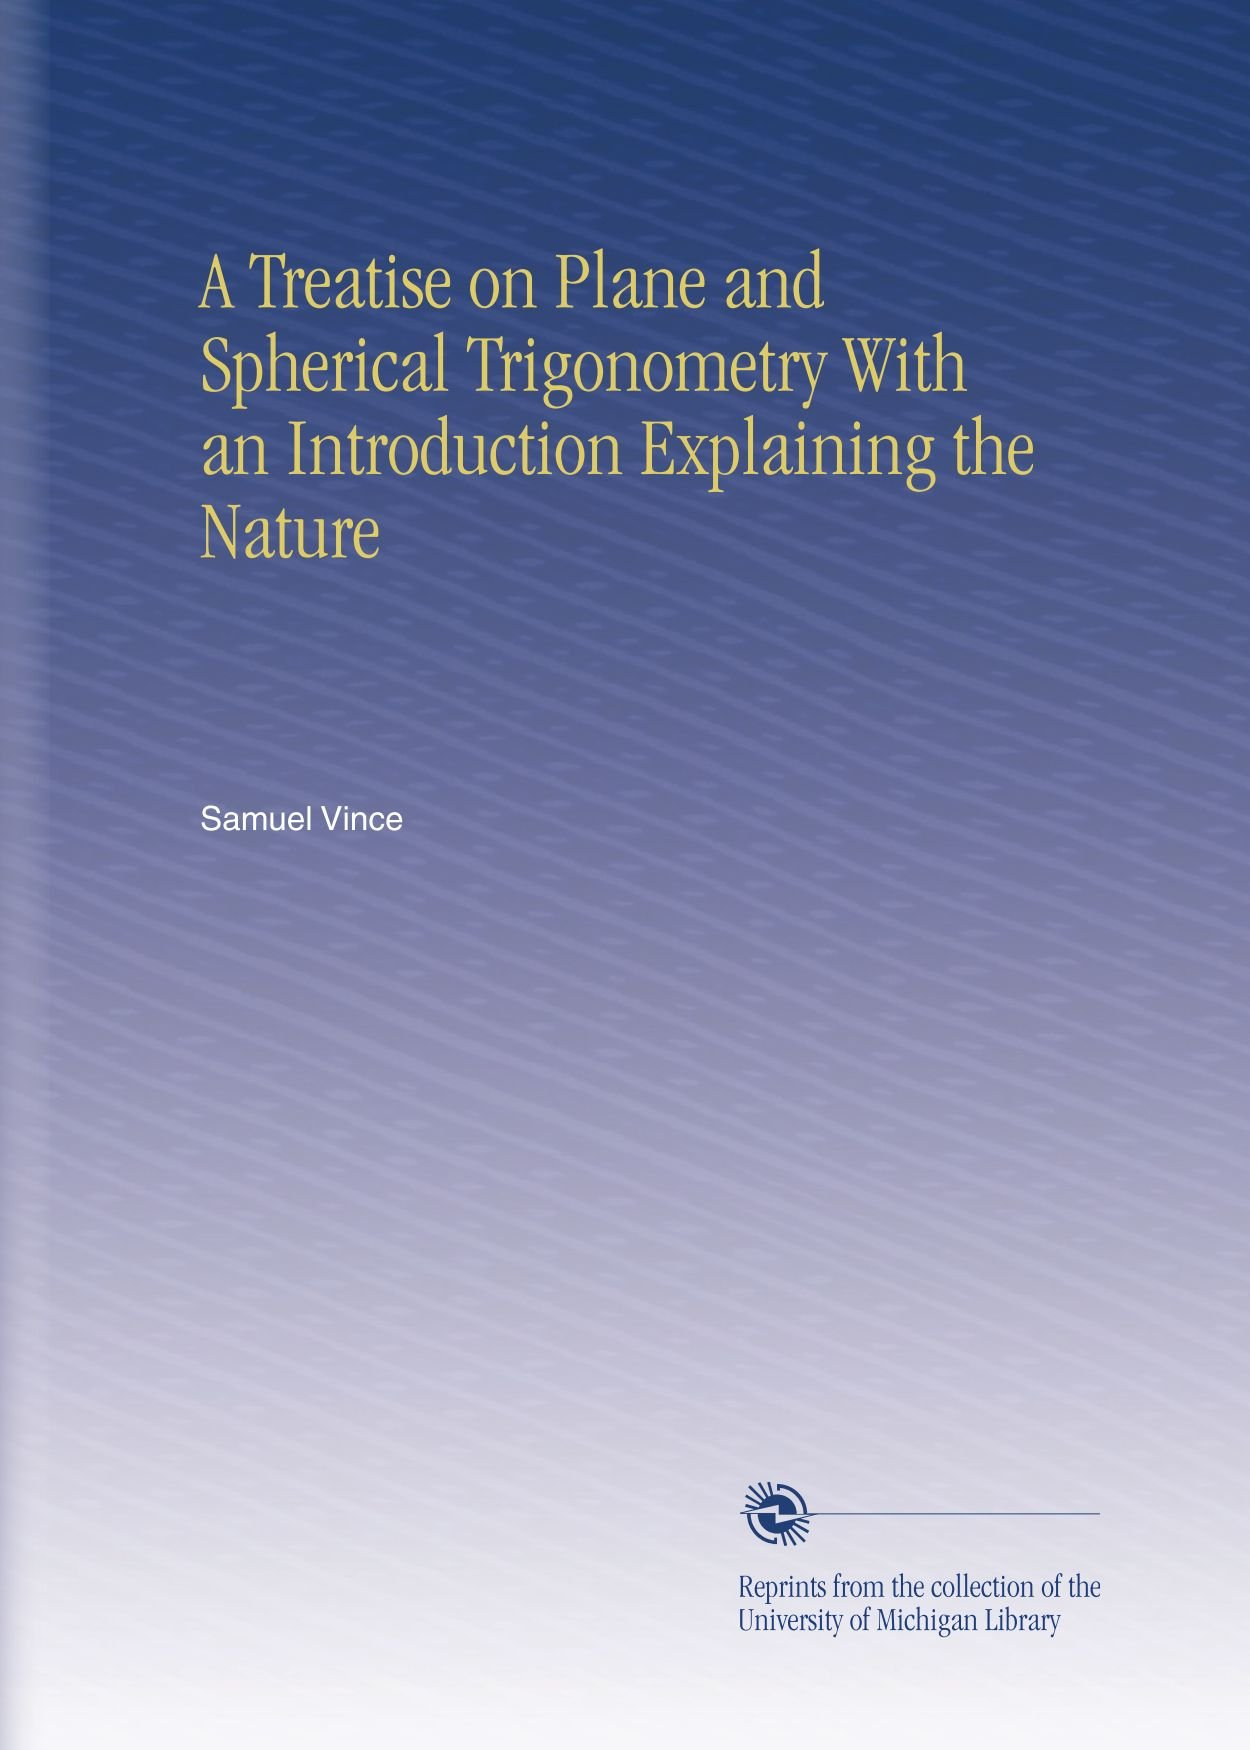 Download A Treatise on Plane and Spherical Trigonometry With an Introduction Explaining the Nature PDF